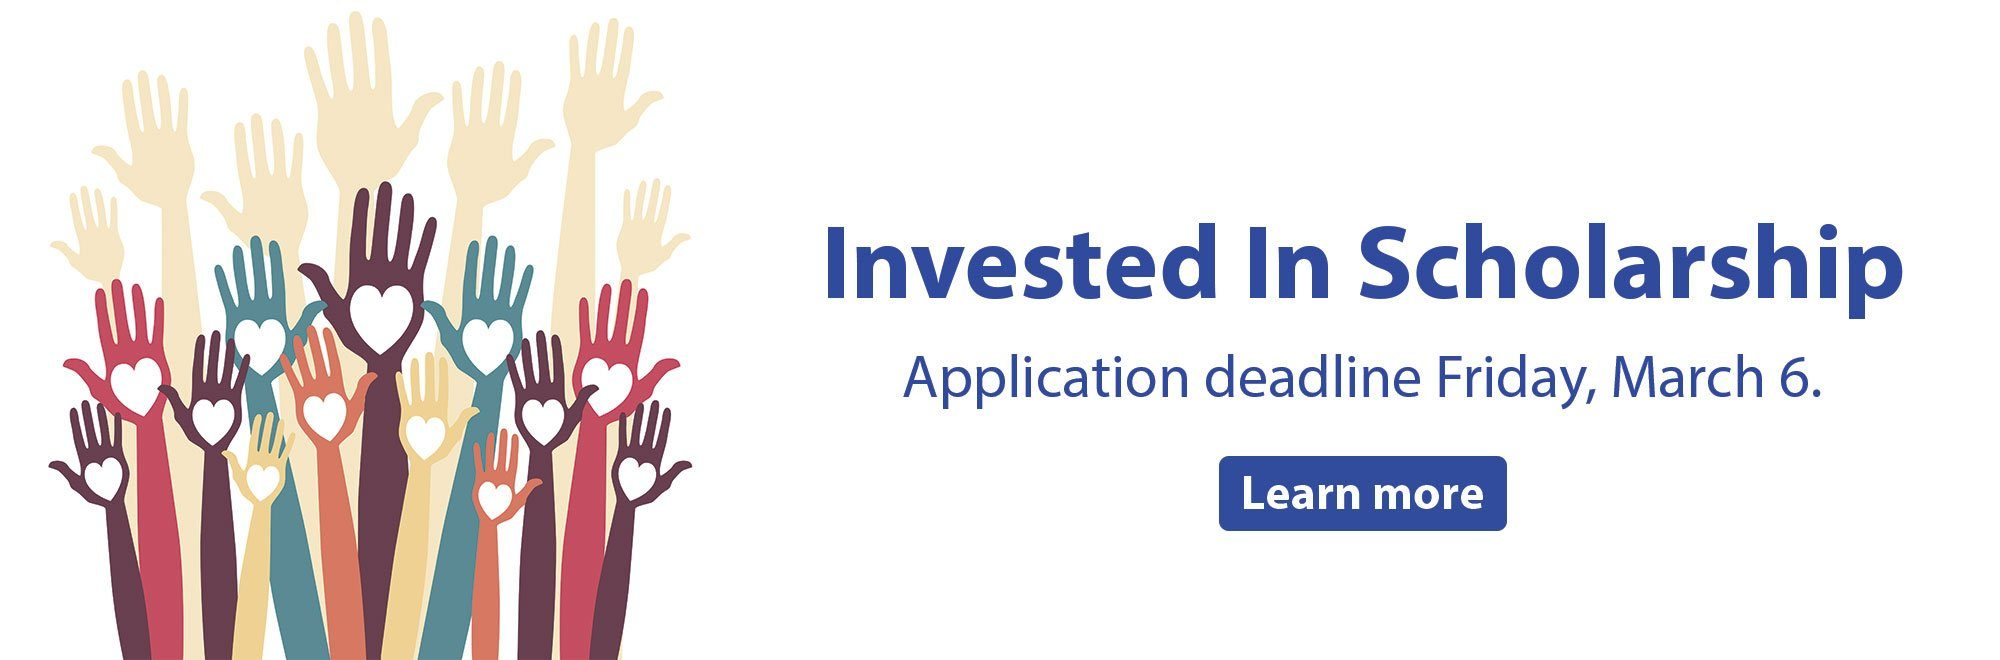 Invested In Scholarship. Application deadline Friday, March 6. Learn more.